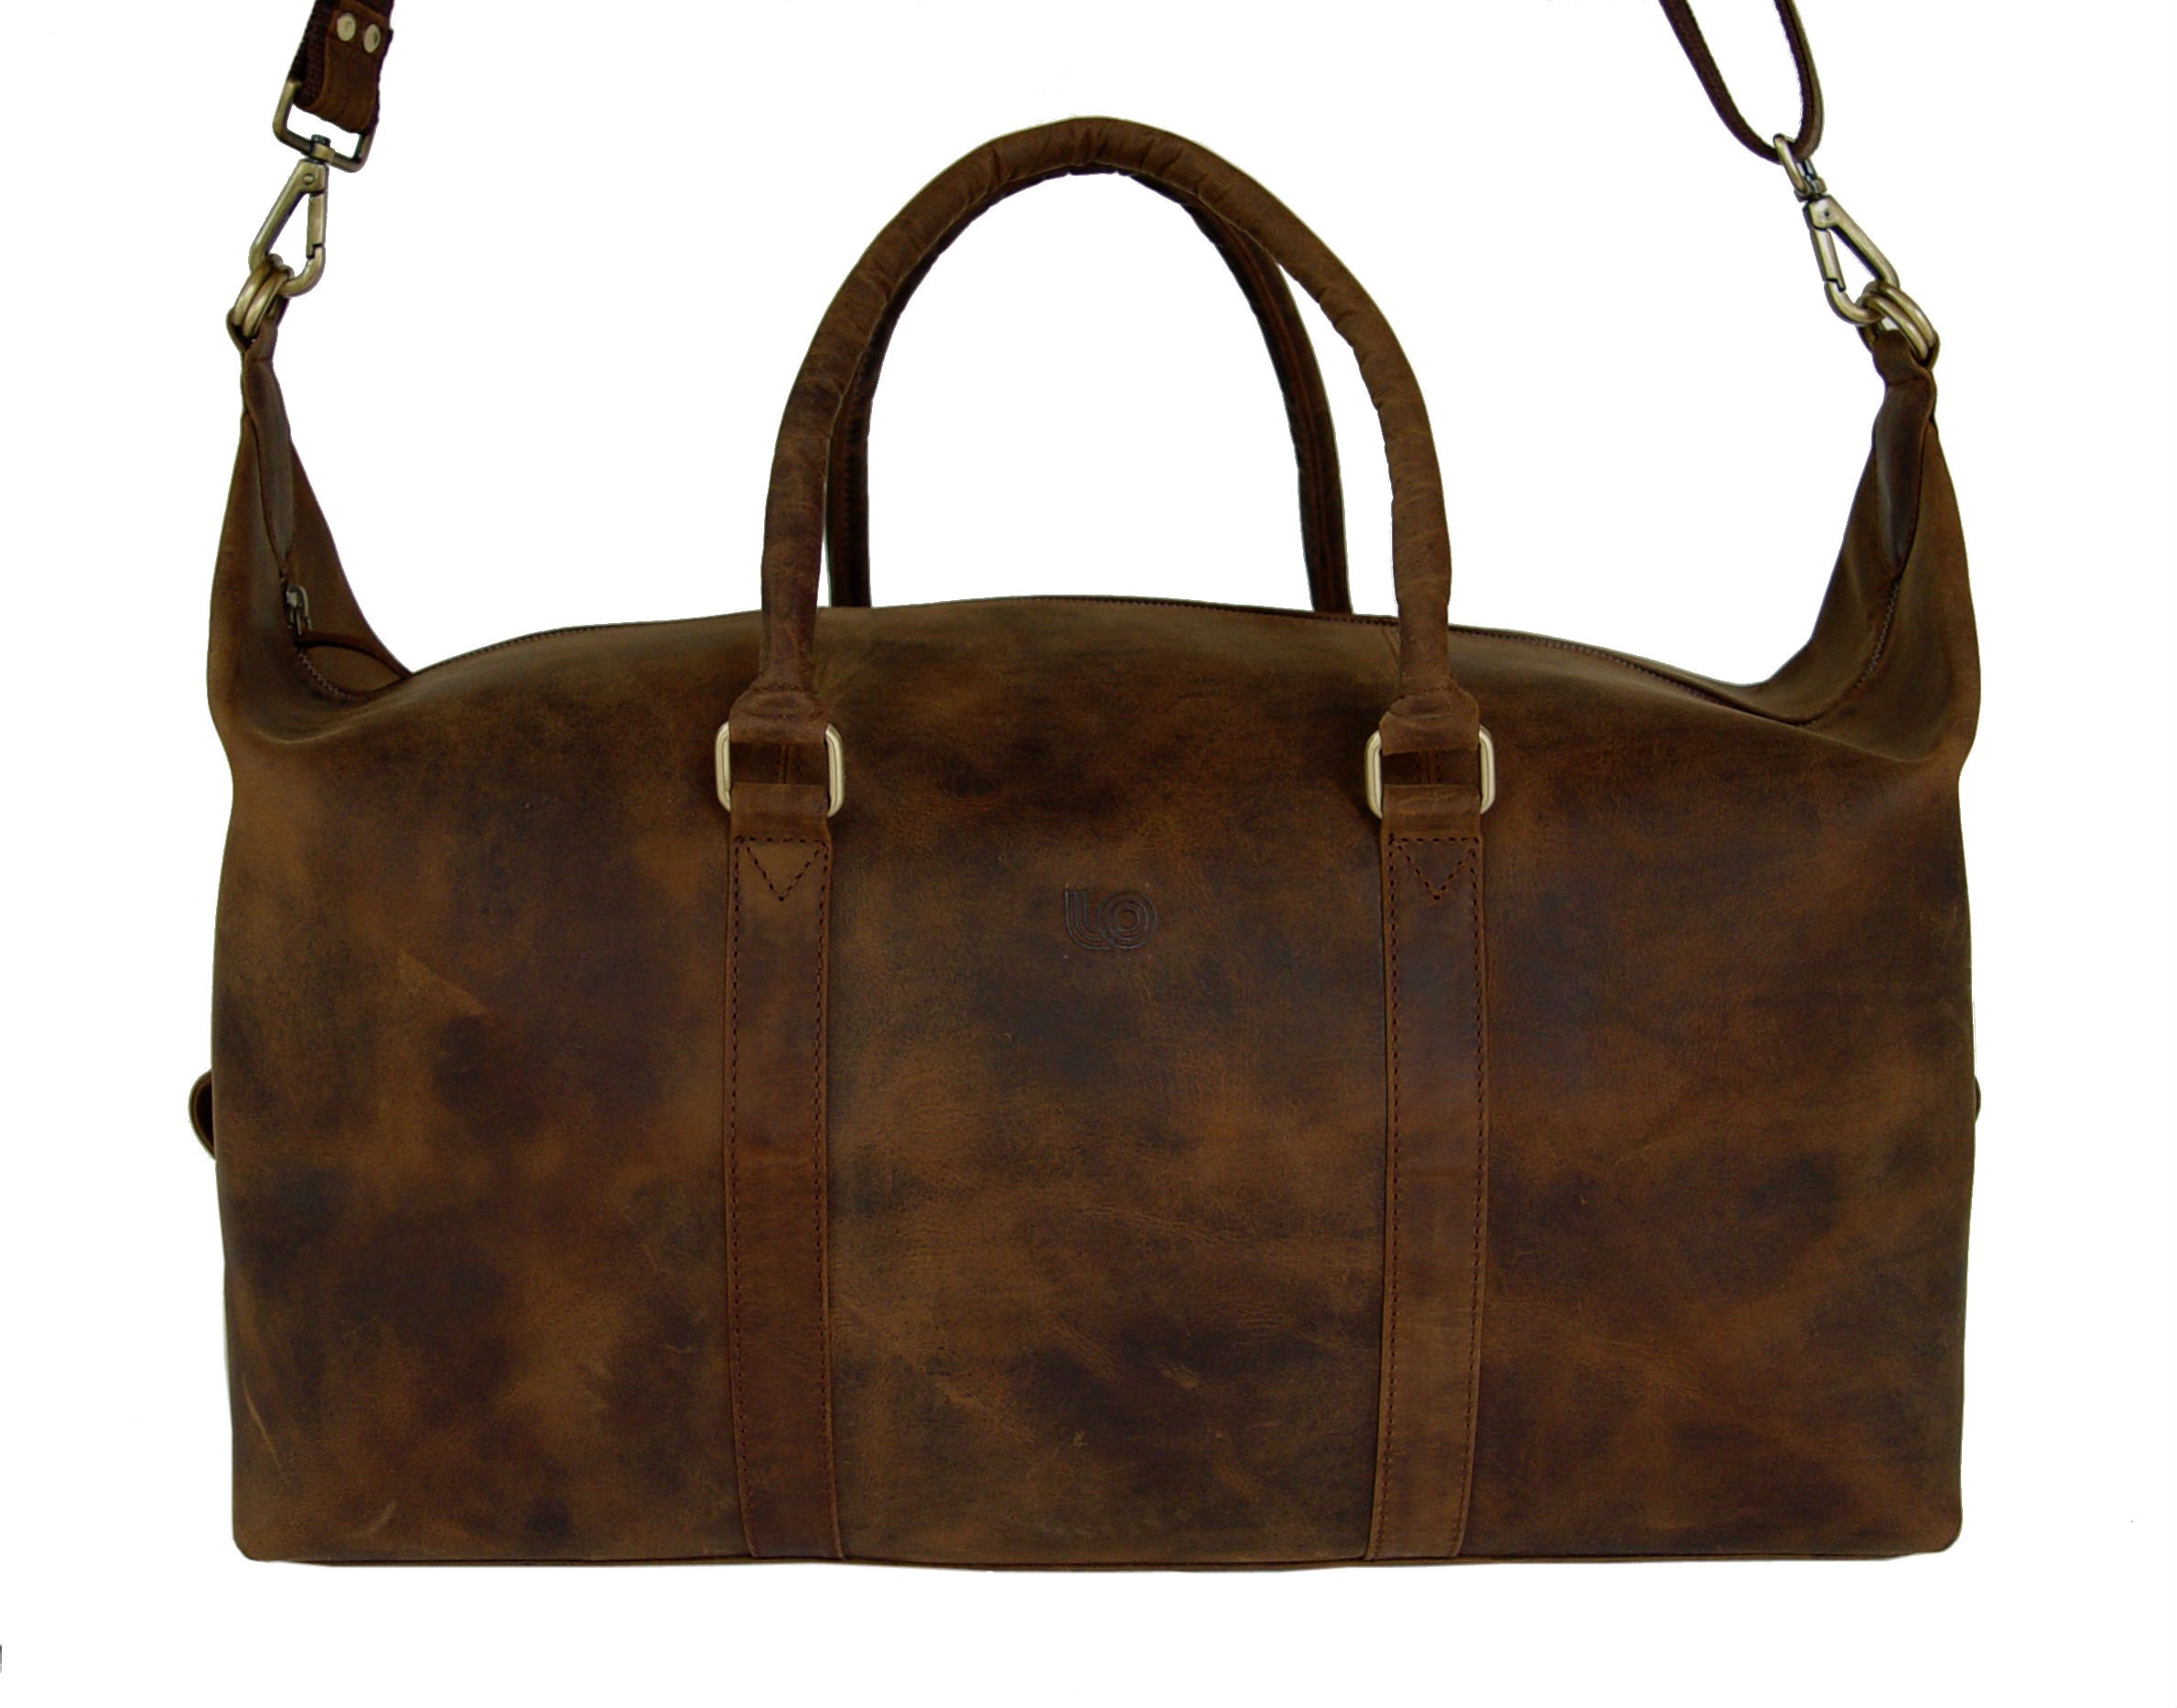 LeftOver Studio Expandable Weekend Overnight Travel Duffel Bag in Thick Oil Pull Hunter Water Buffalo Leather by Leftover Studio (Image #6)